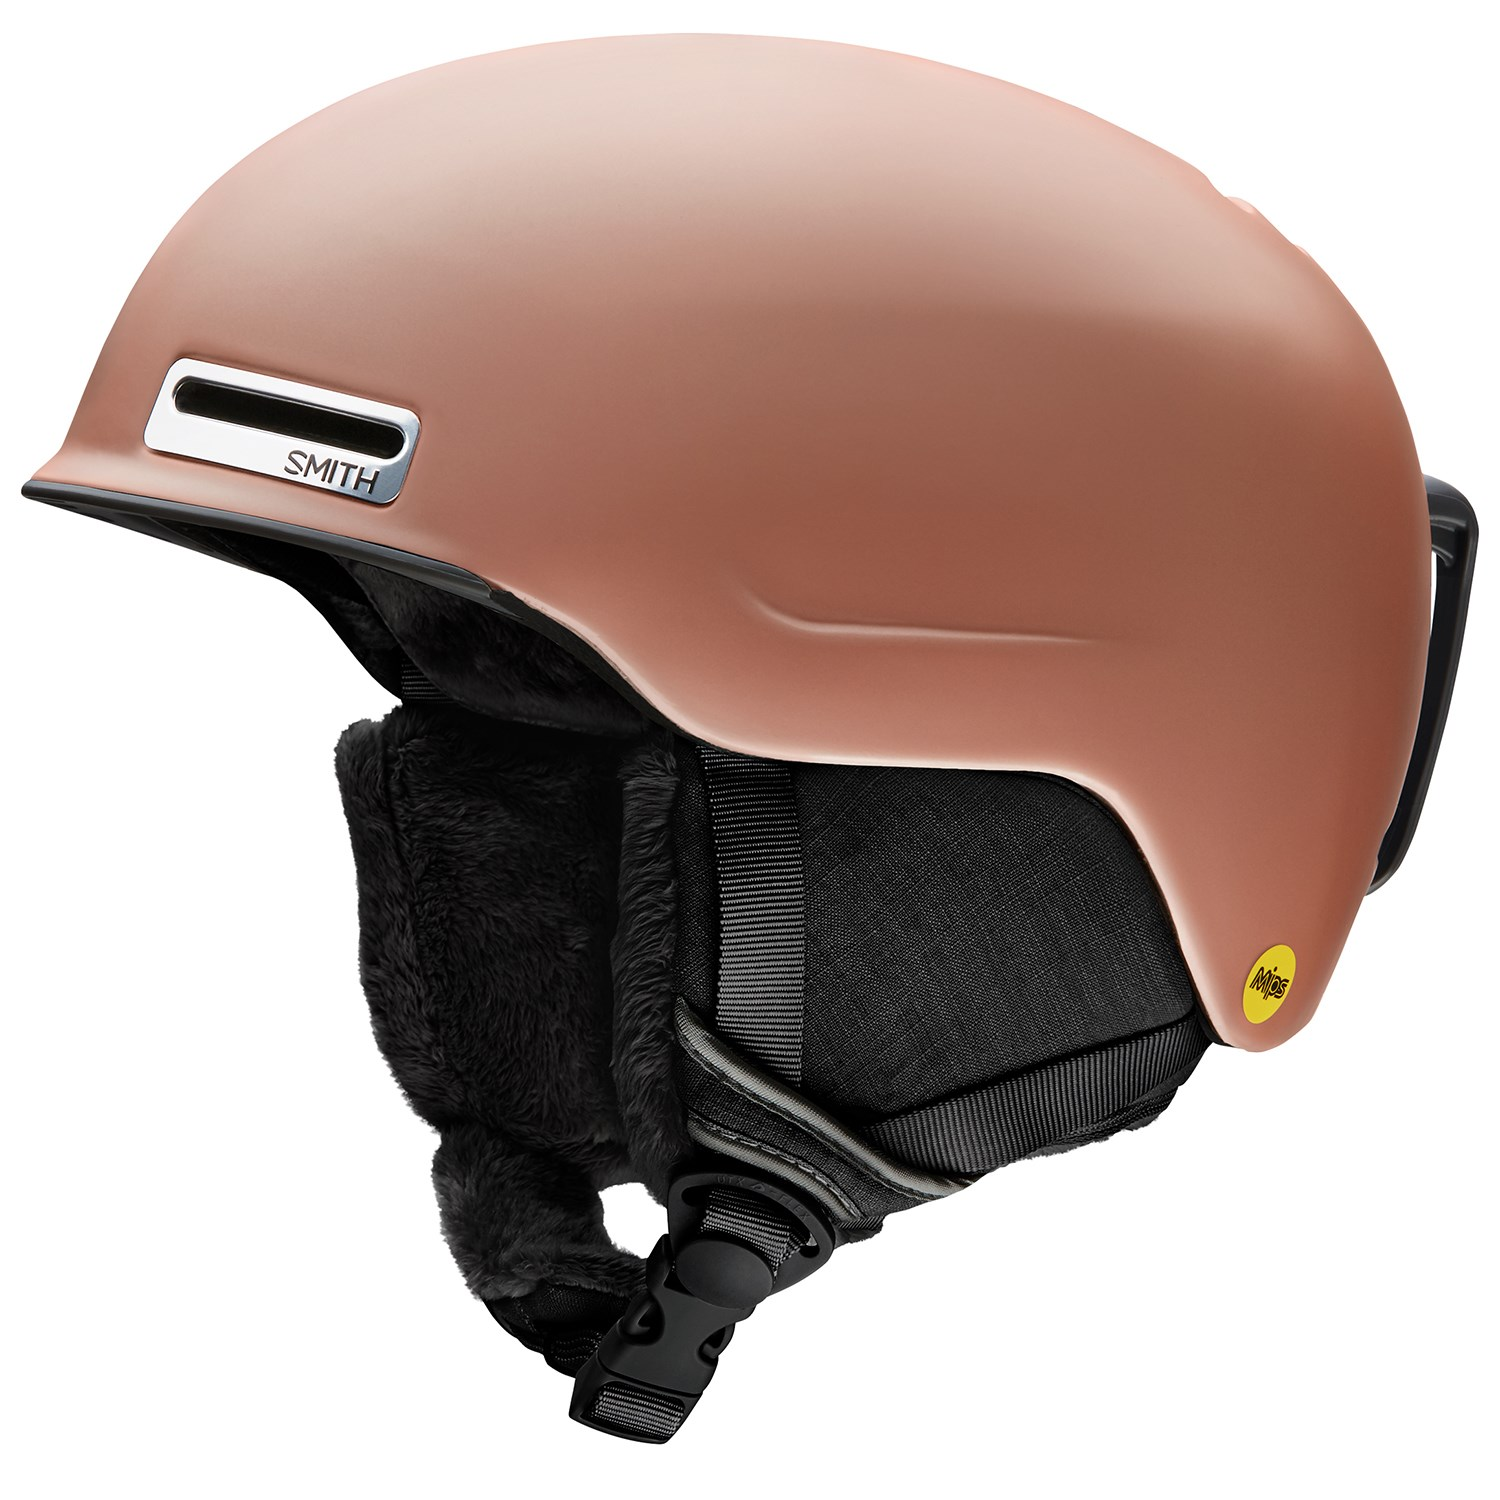 9963f40b9c7 Smith Allure MIPS Helmet - Women s